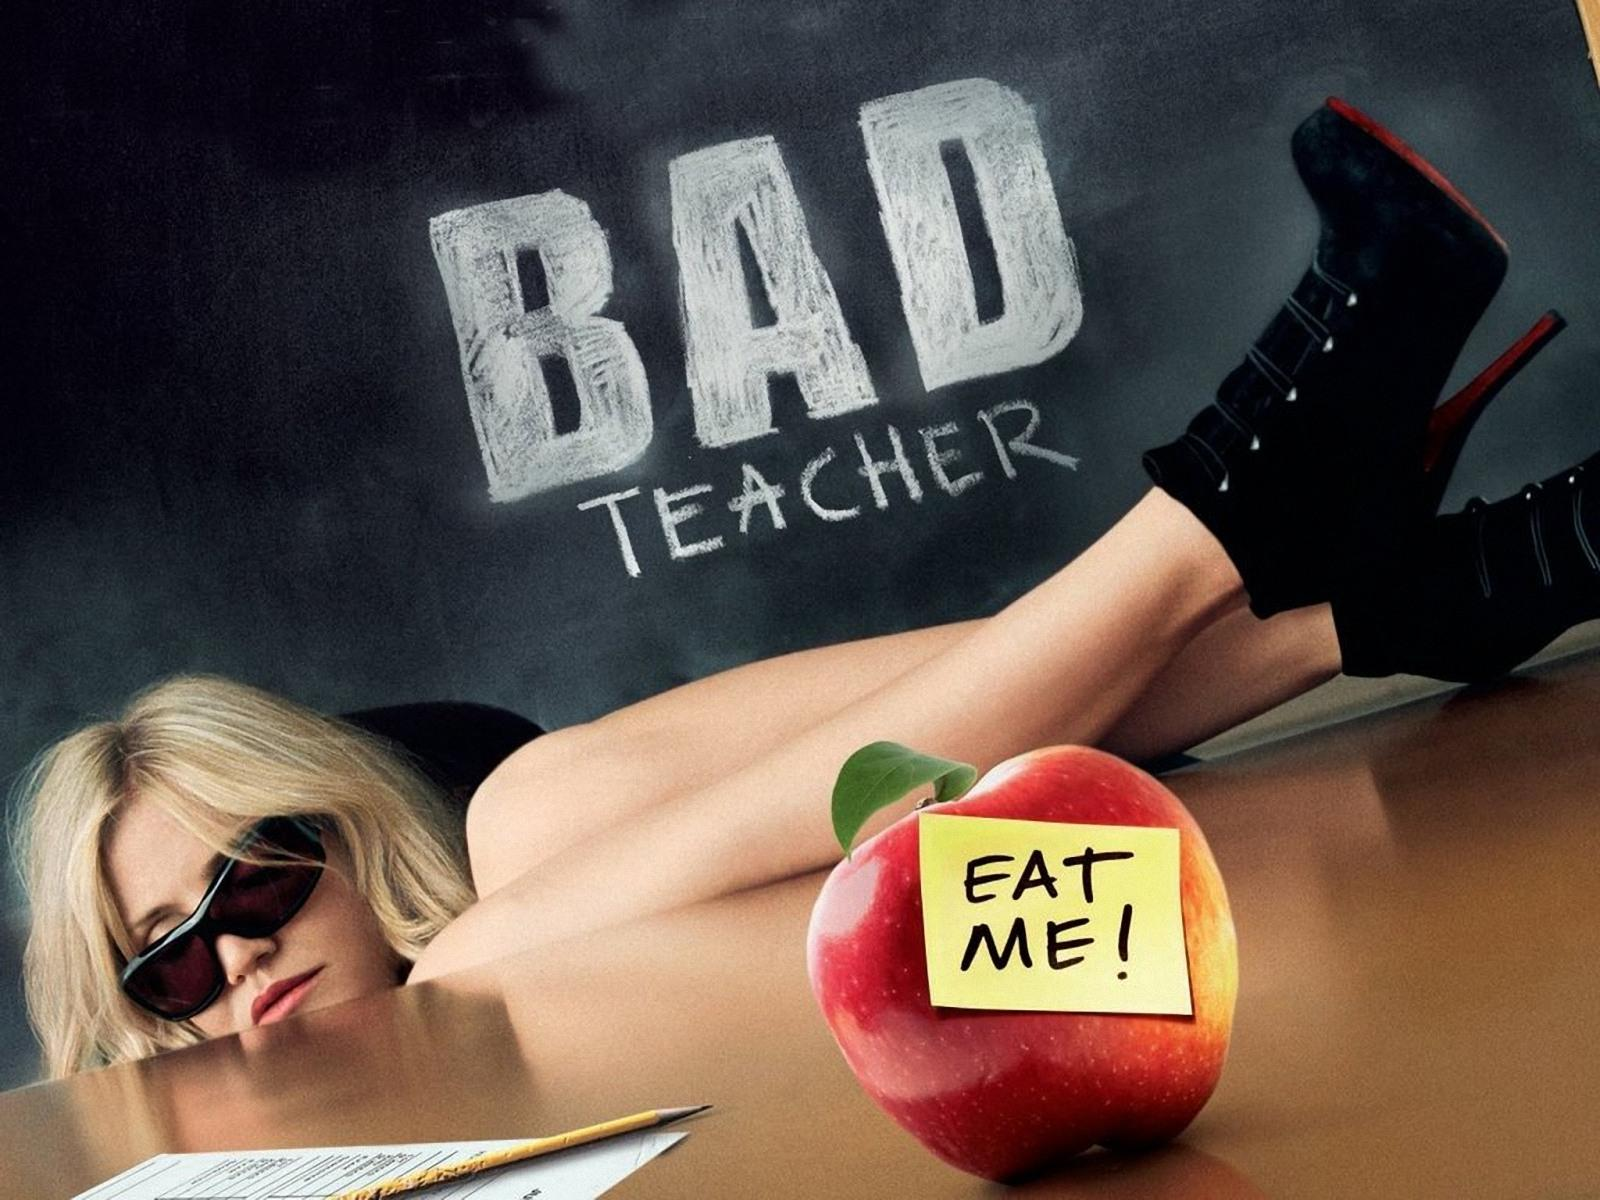 click to free download the wallpaper--Popular Movies Poster, Bad Yet Hot Teacher, Highly Tempting 1600X1200 free wallpaper download